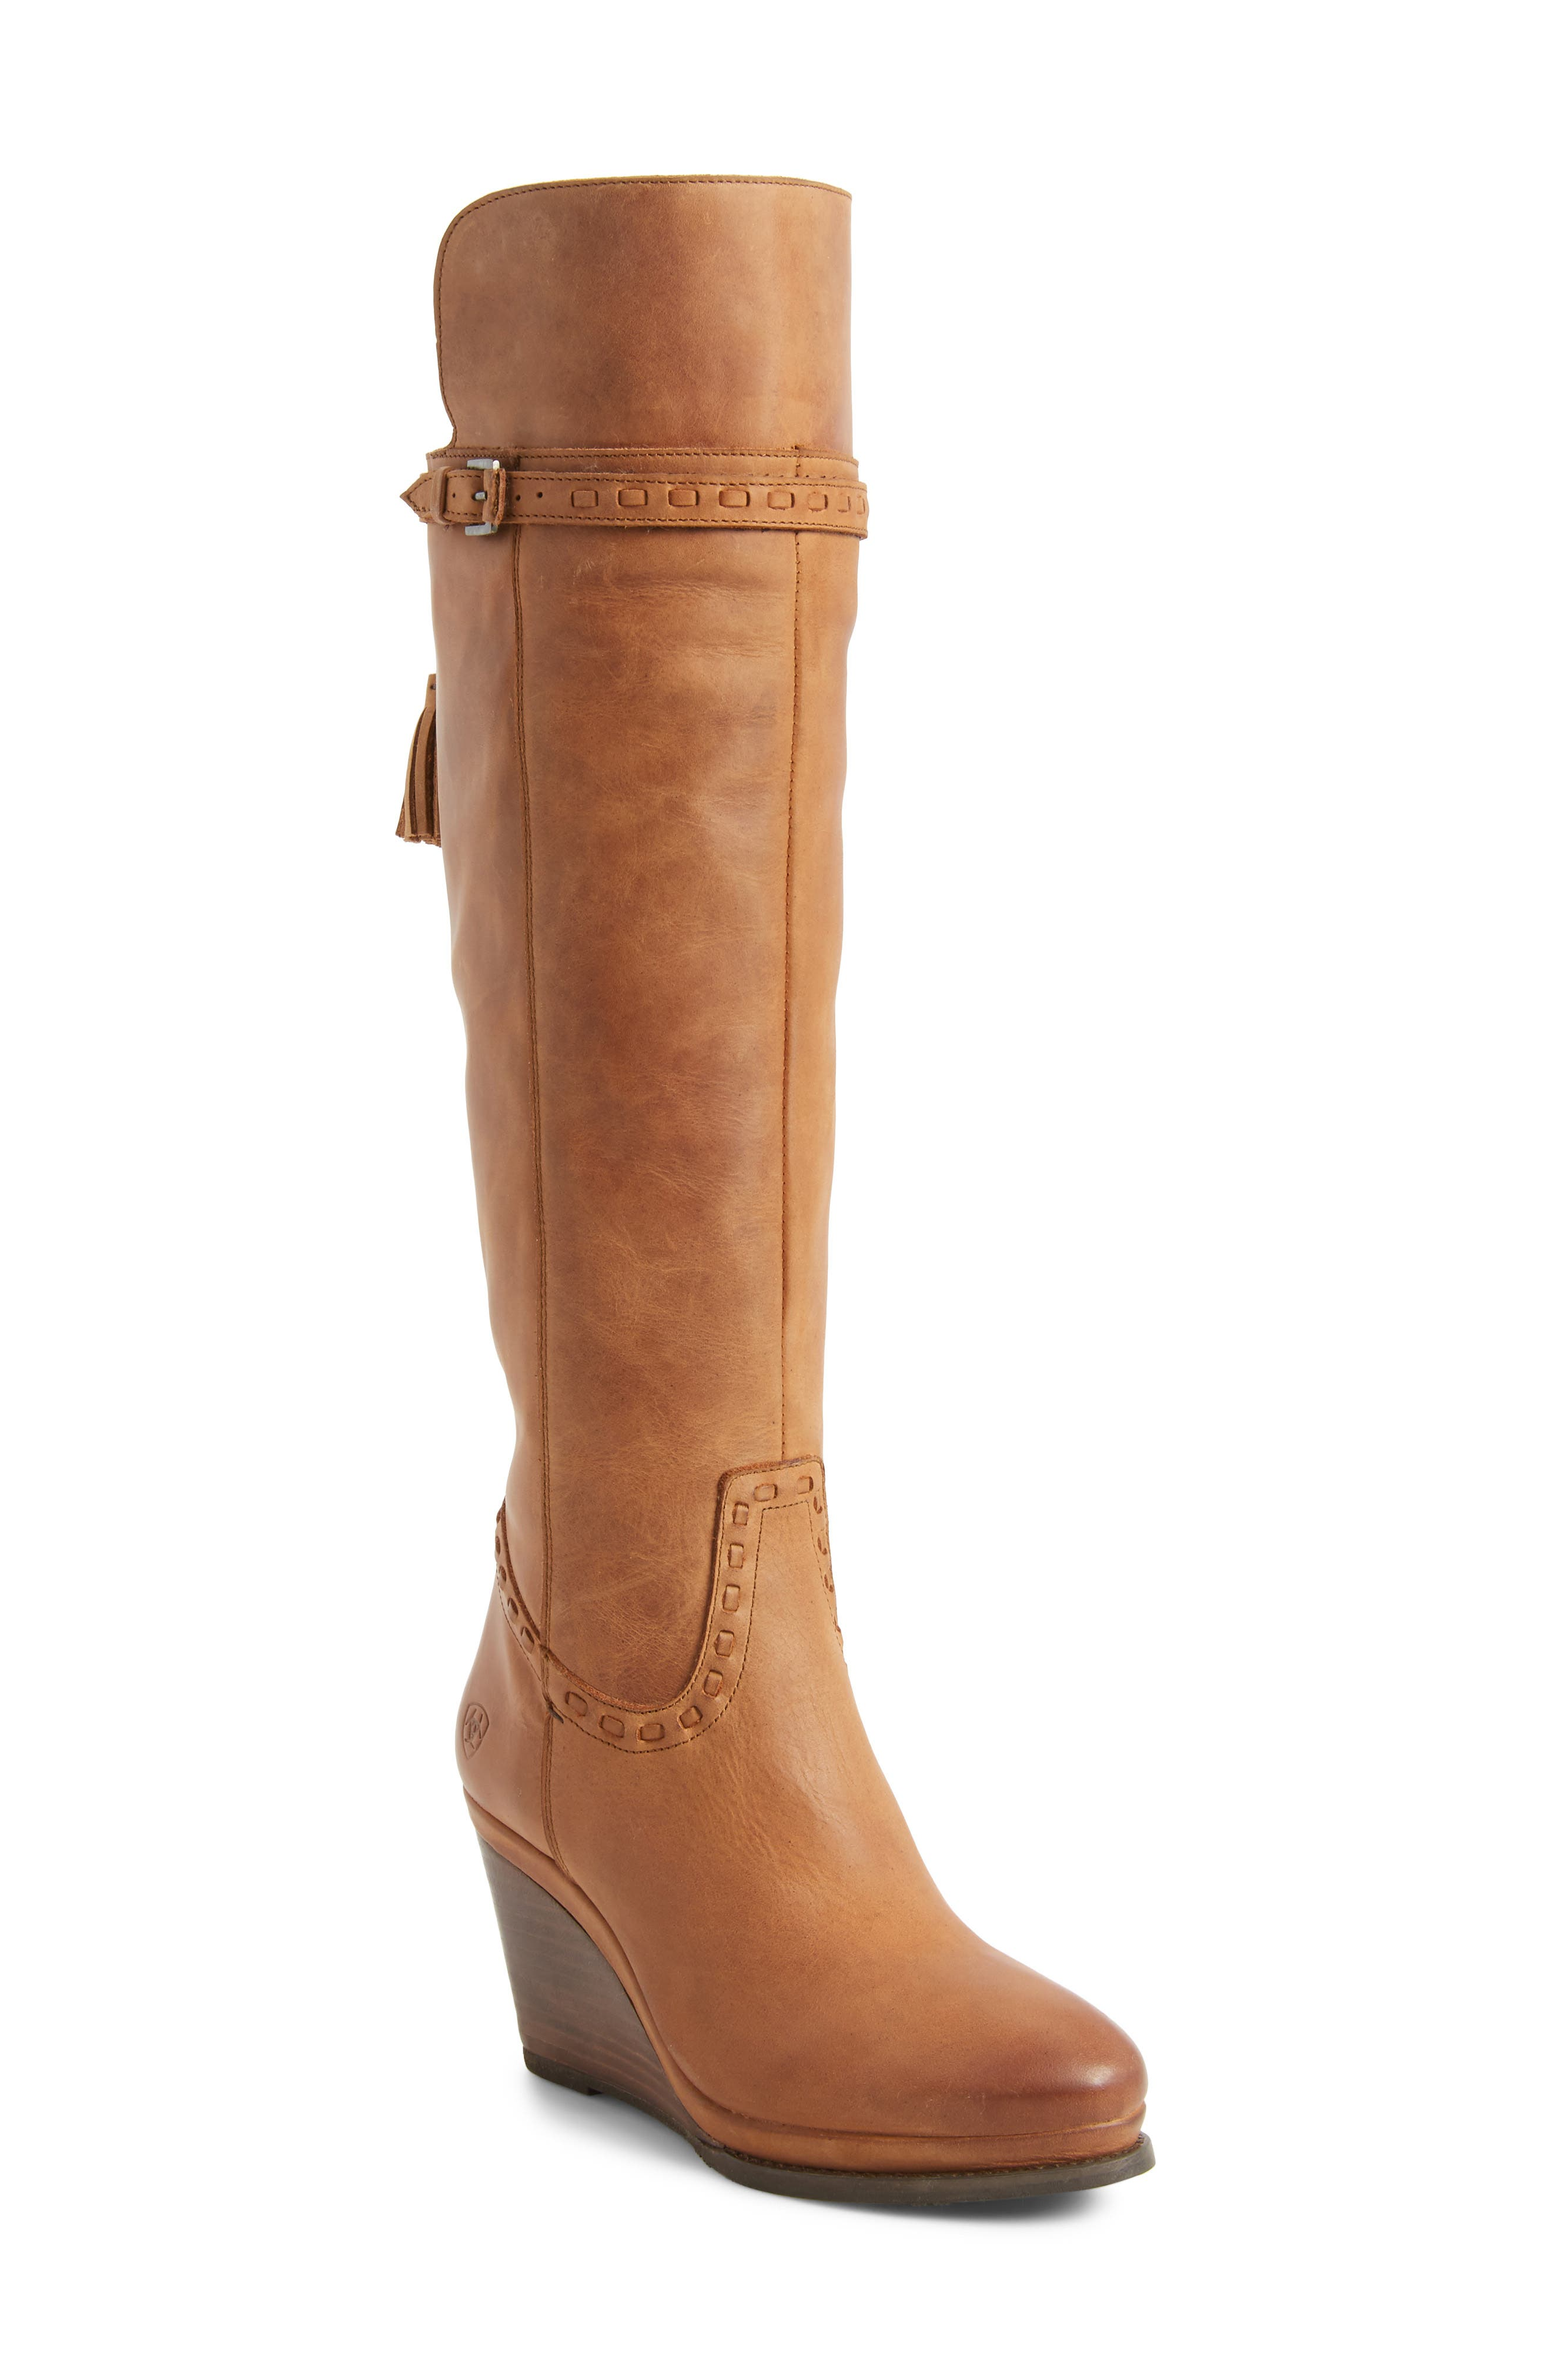 Knoxville Boot,                             Main thumbnail 1, color,                             Trendy Tawny Leather